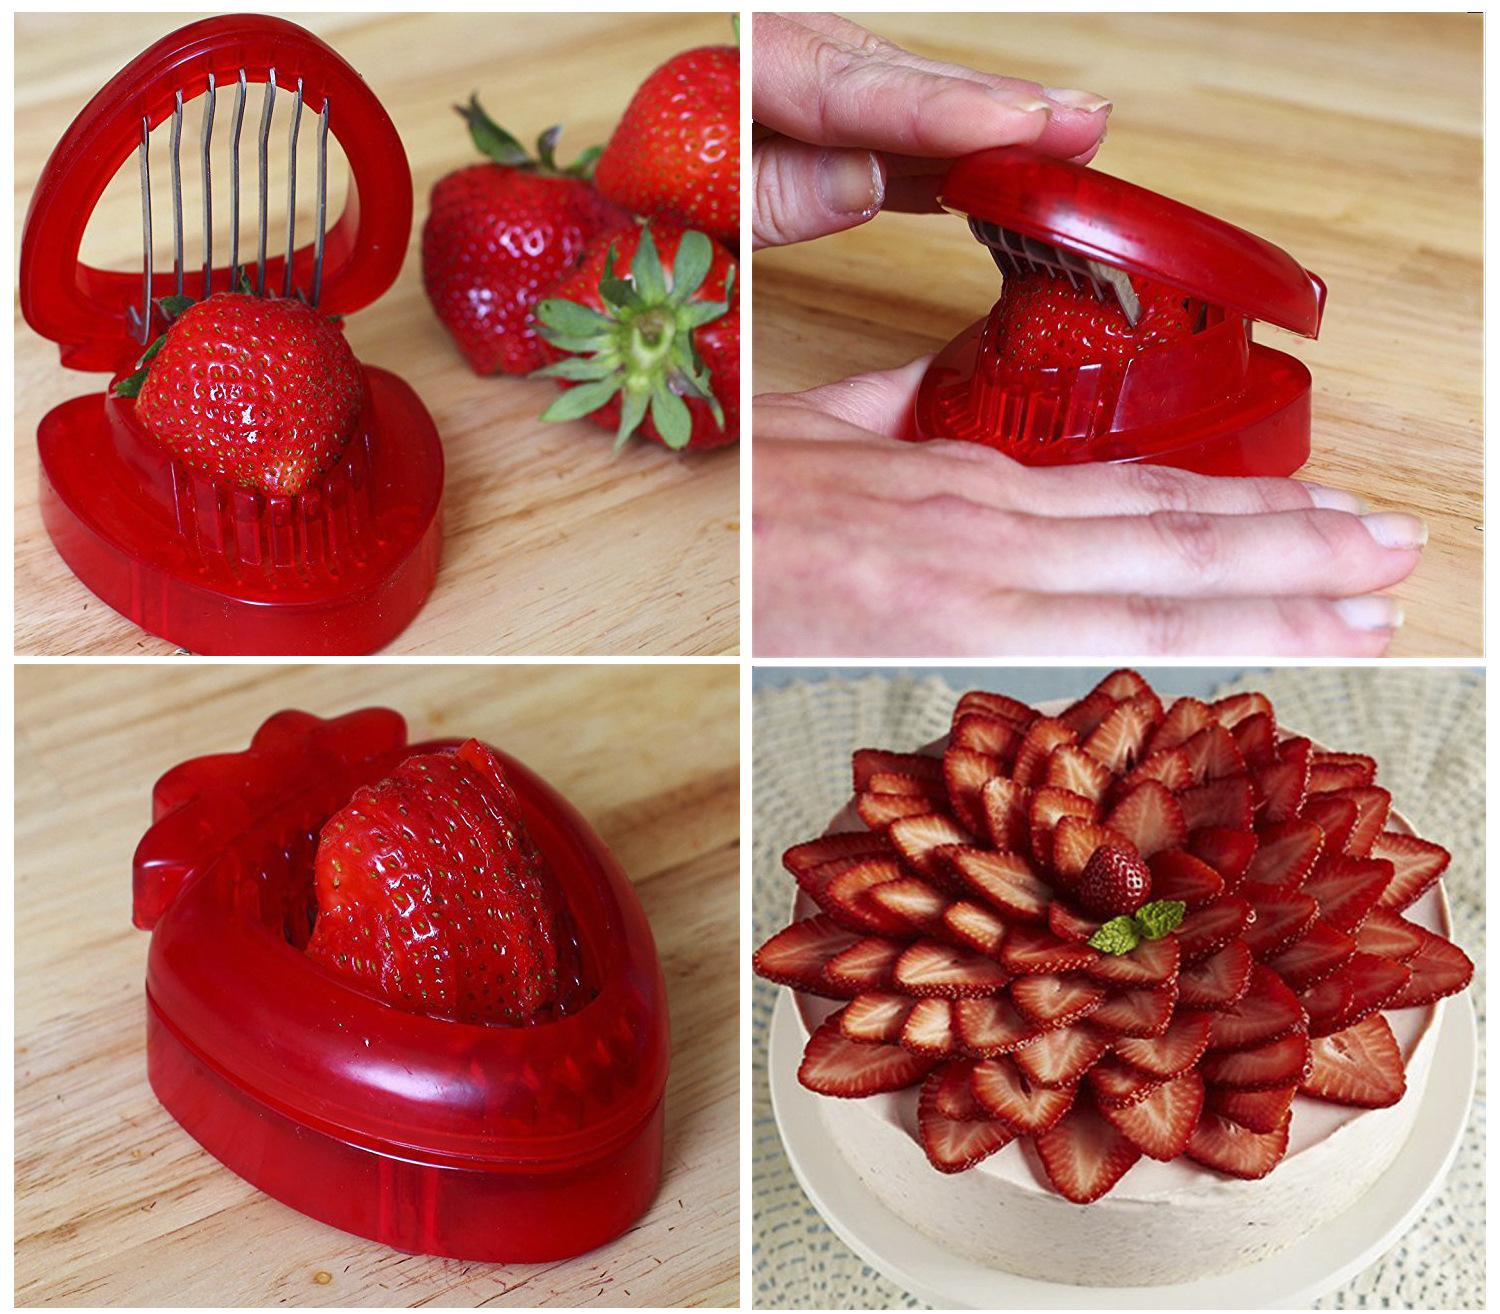 Ues the tool to slice Strawberry